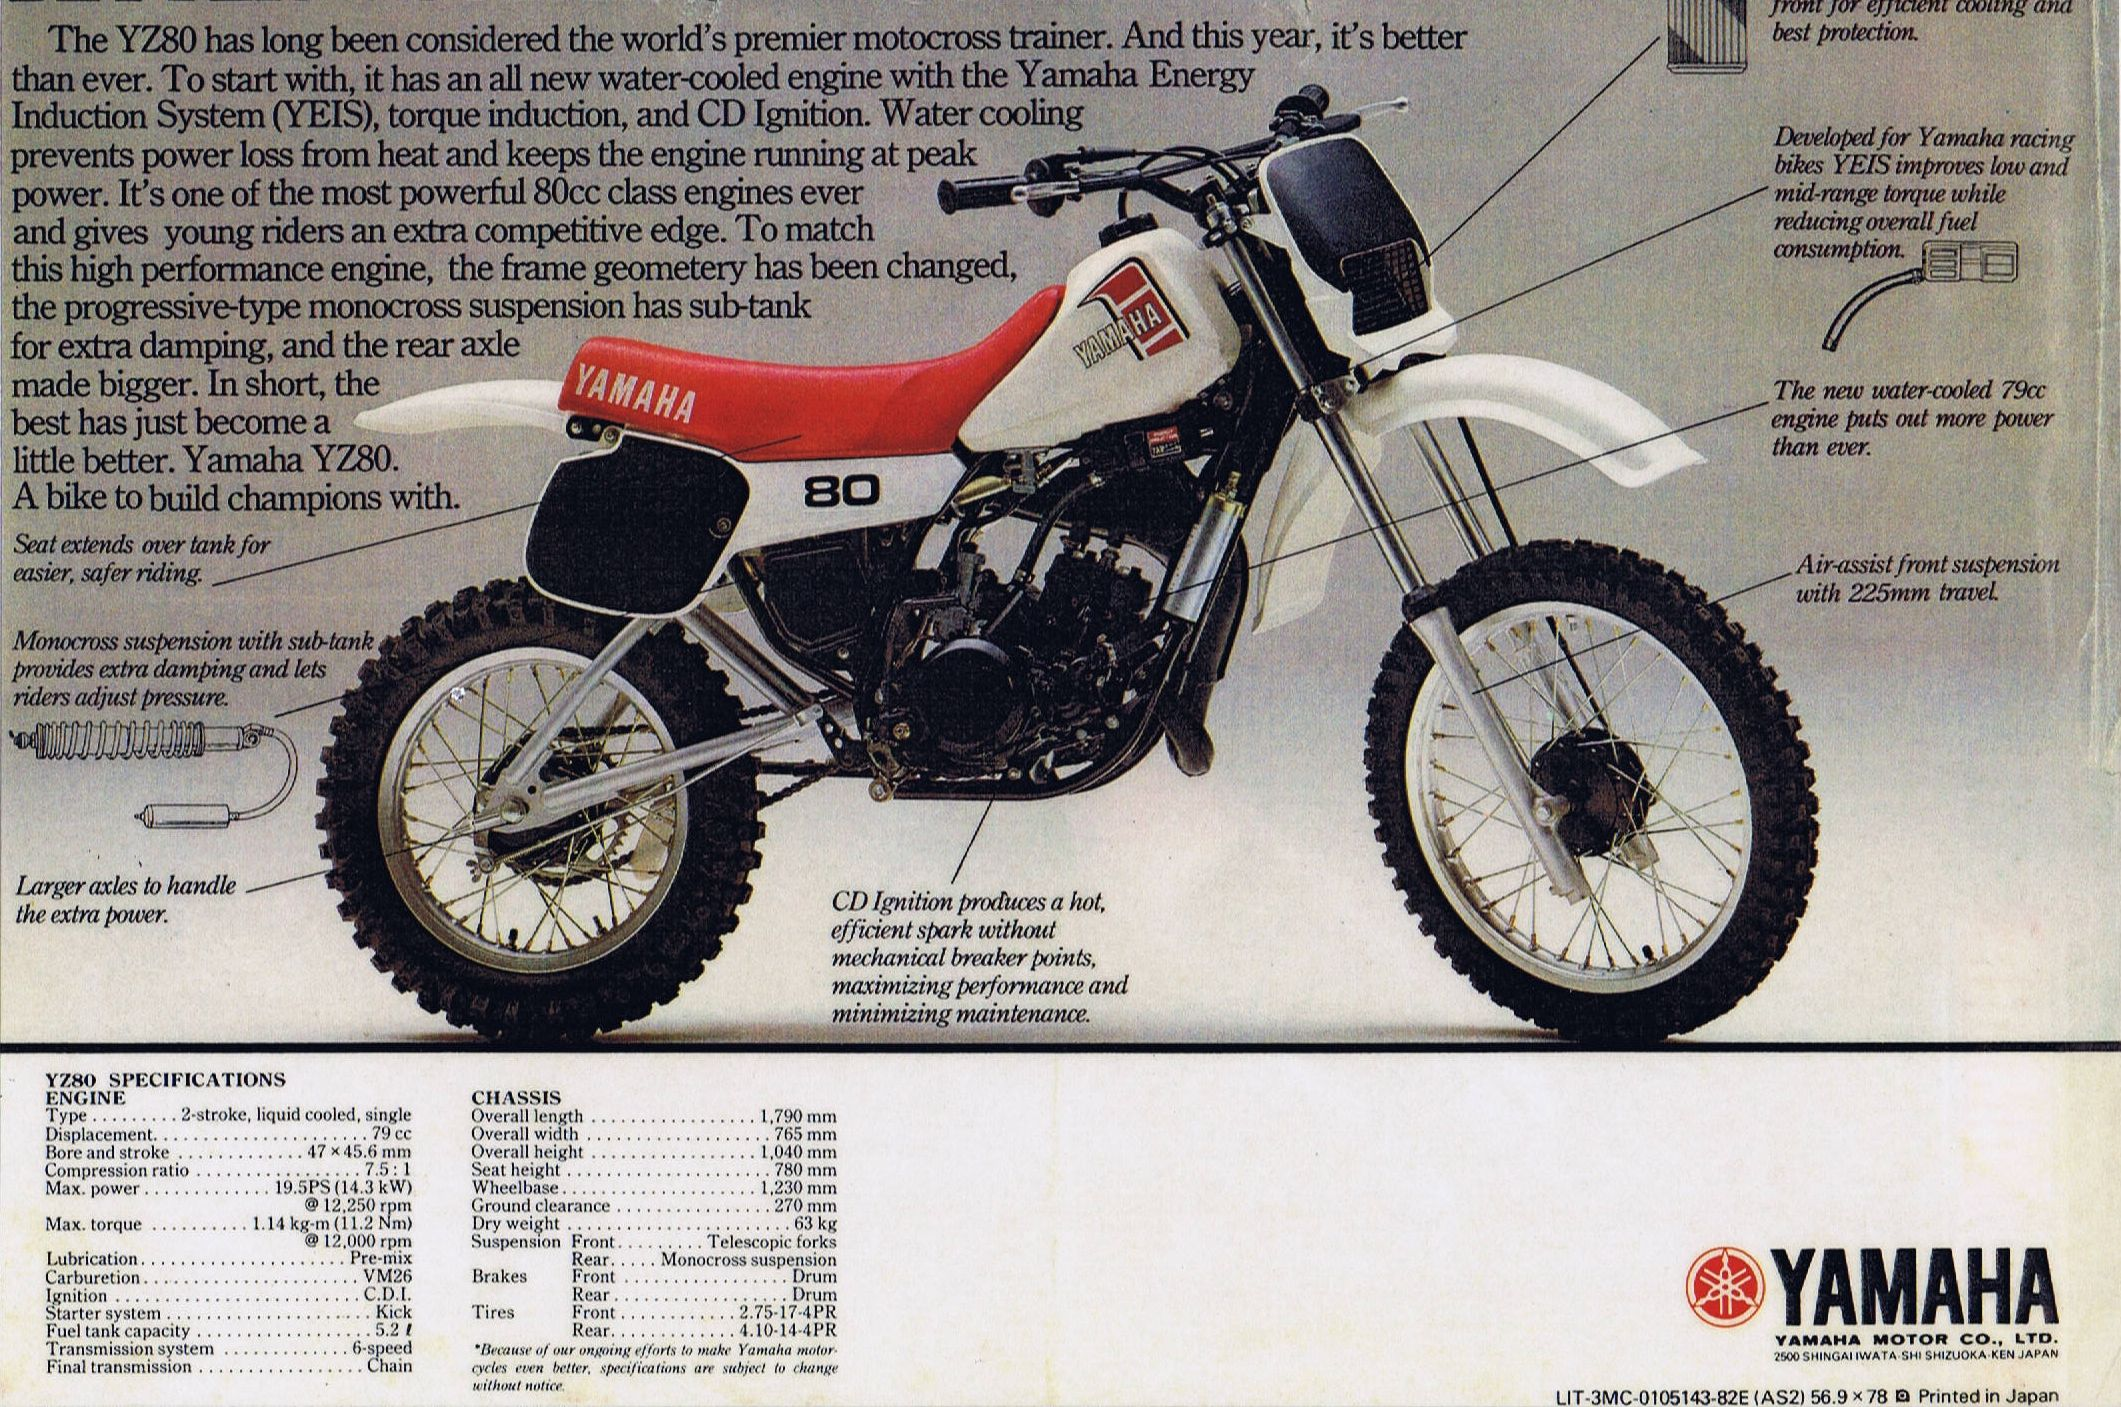 1974 Yamaha Yz 400 Engine Diagram Search For Wiring Diagrams Dt175 Schematic Series Data Rh Enduros Com 125 250